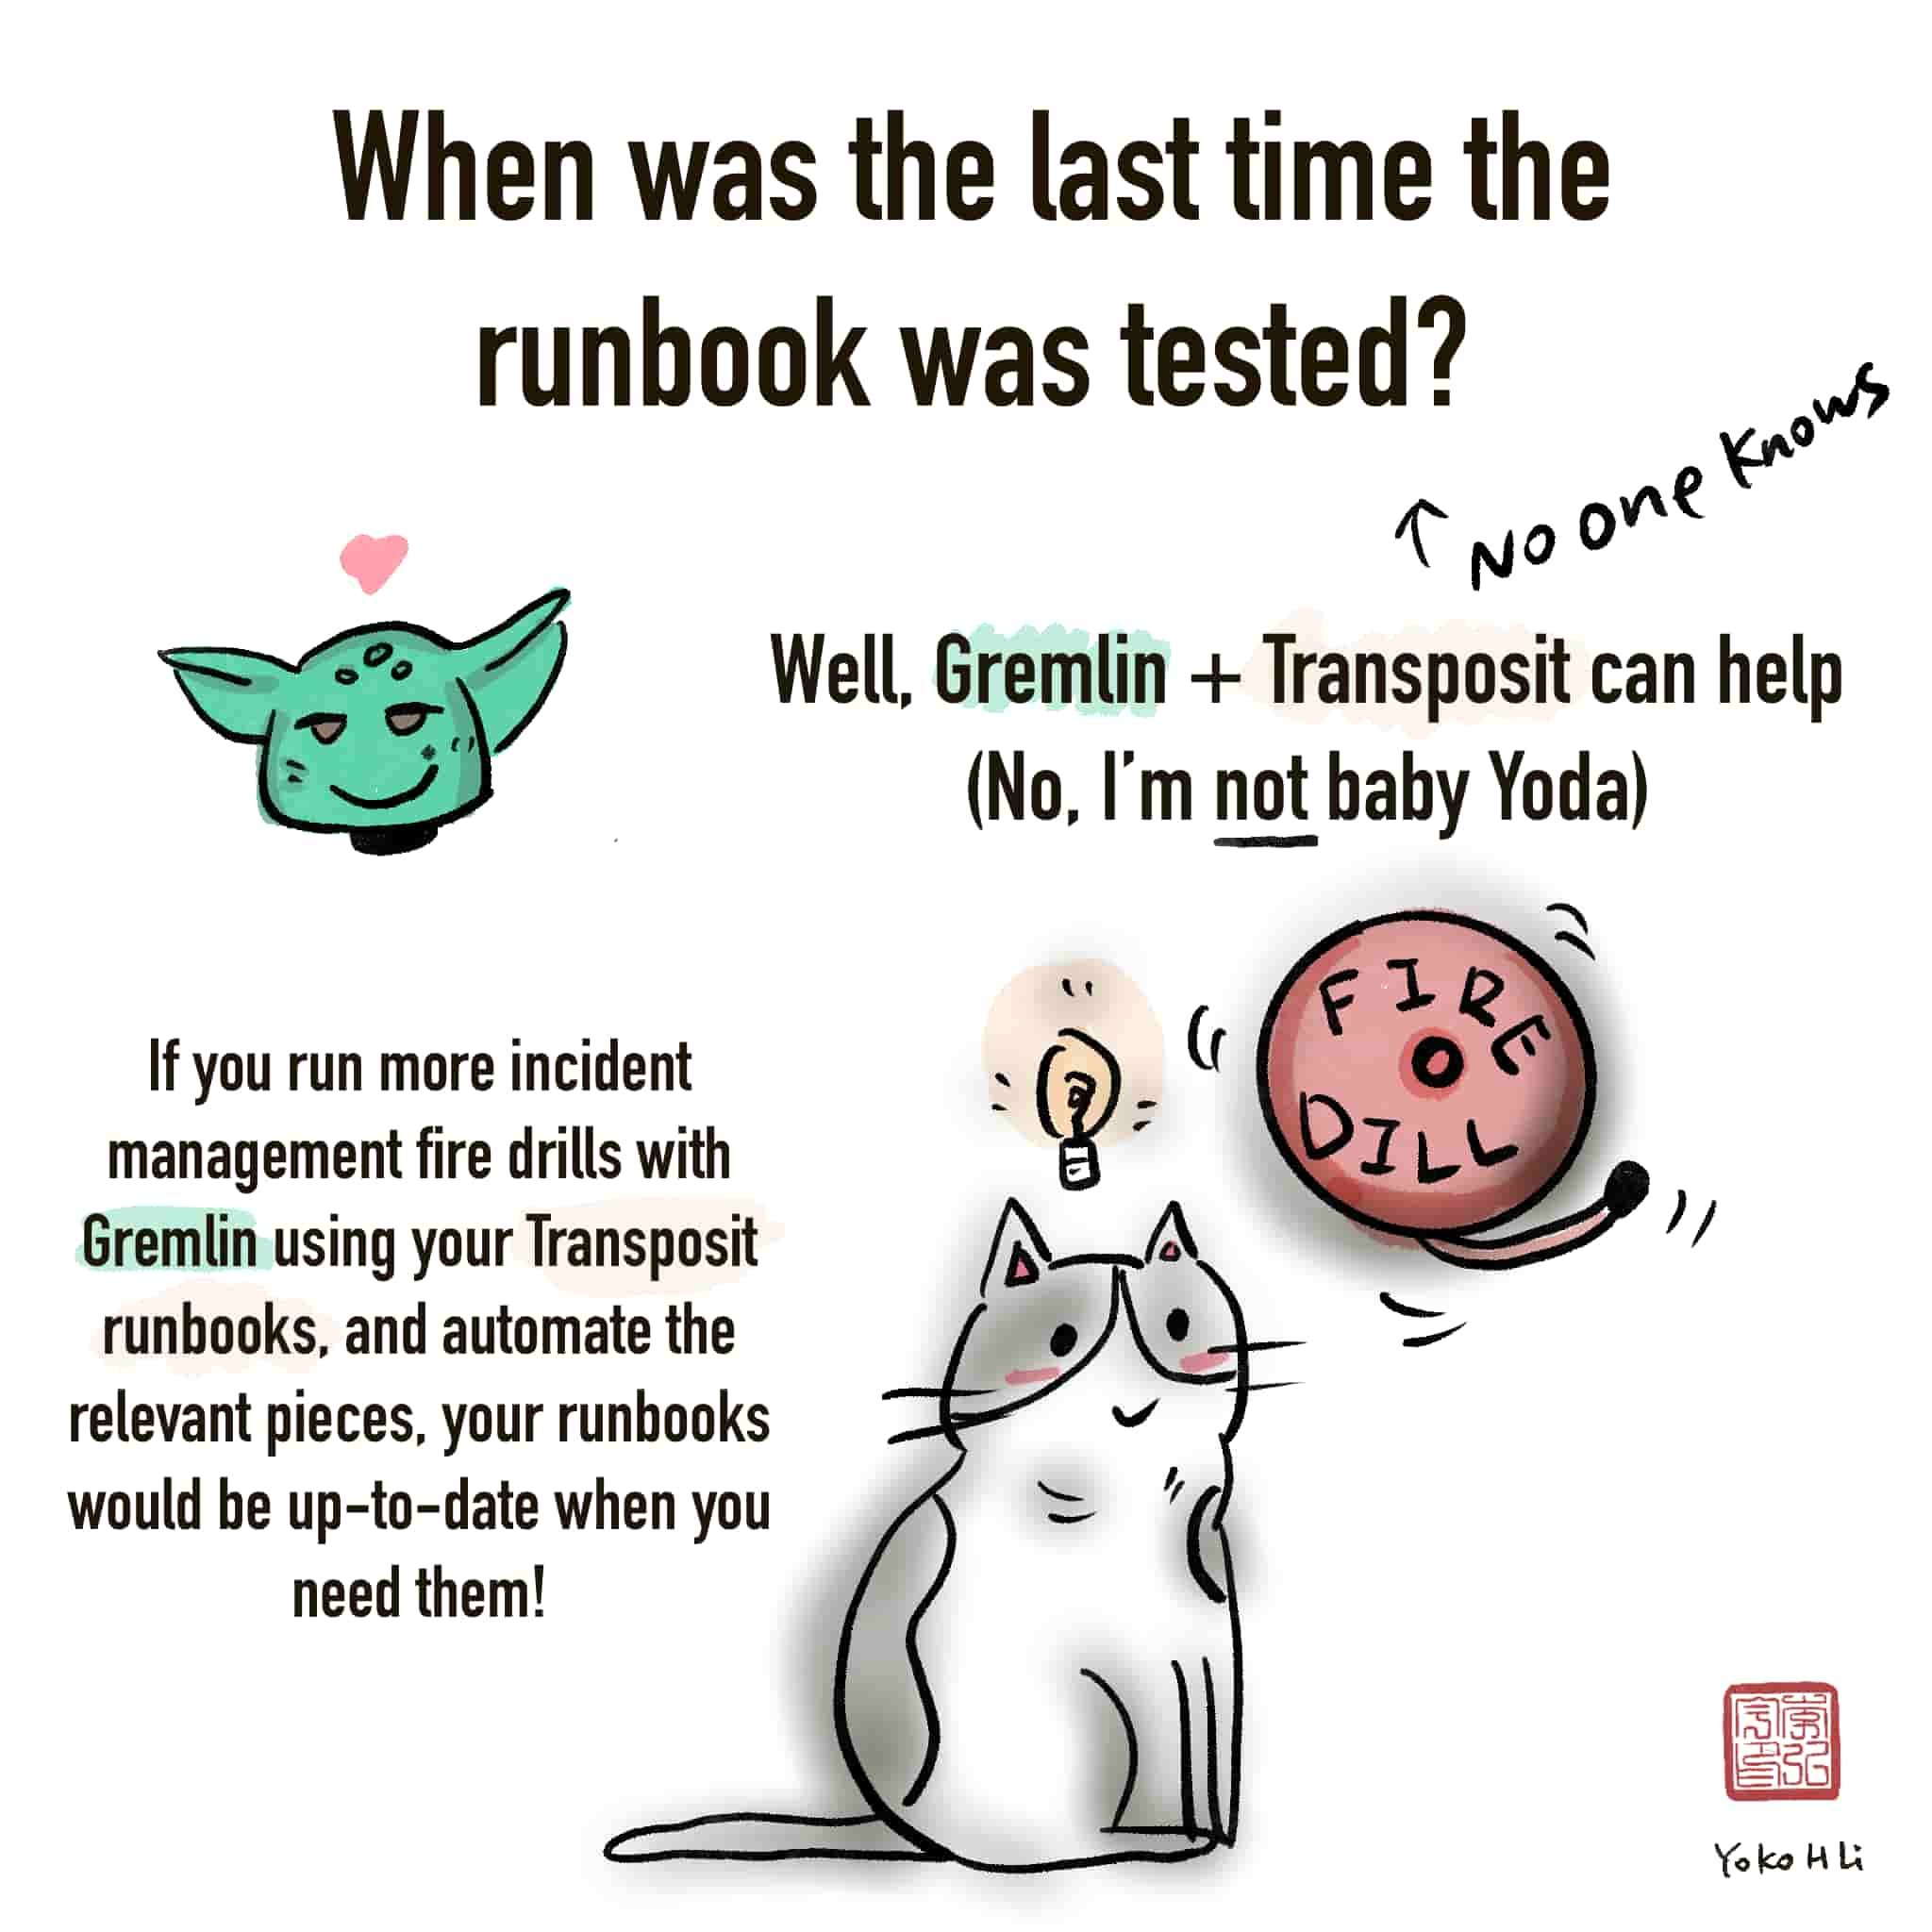 Comic: When was the last time the runbook was tested? (No one knows) Well, Gremlin + Transposit can help. If you run more incident management fire drills with Gremlin using your Transposit runbooks, and automate the relevant pieces, your runbooks would be up-to-date when you need them!